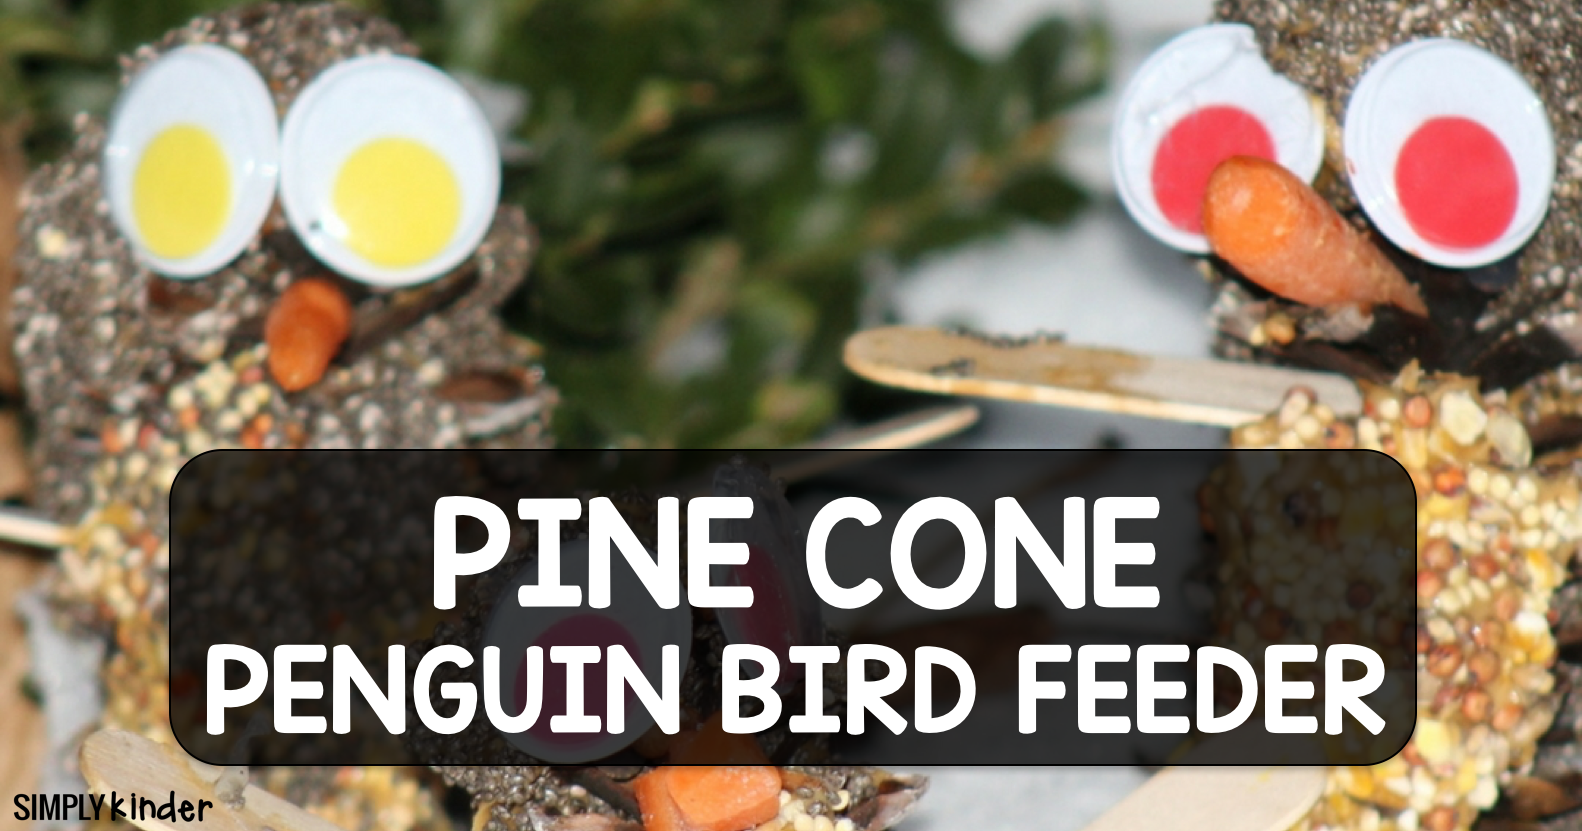 Pine Cone Penguin Bird Feeders